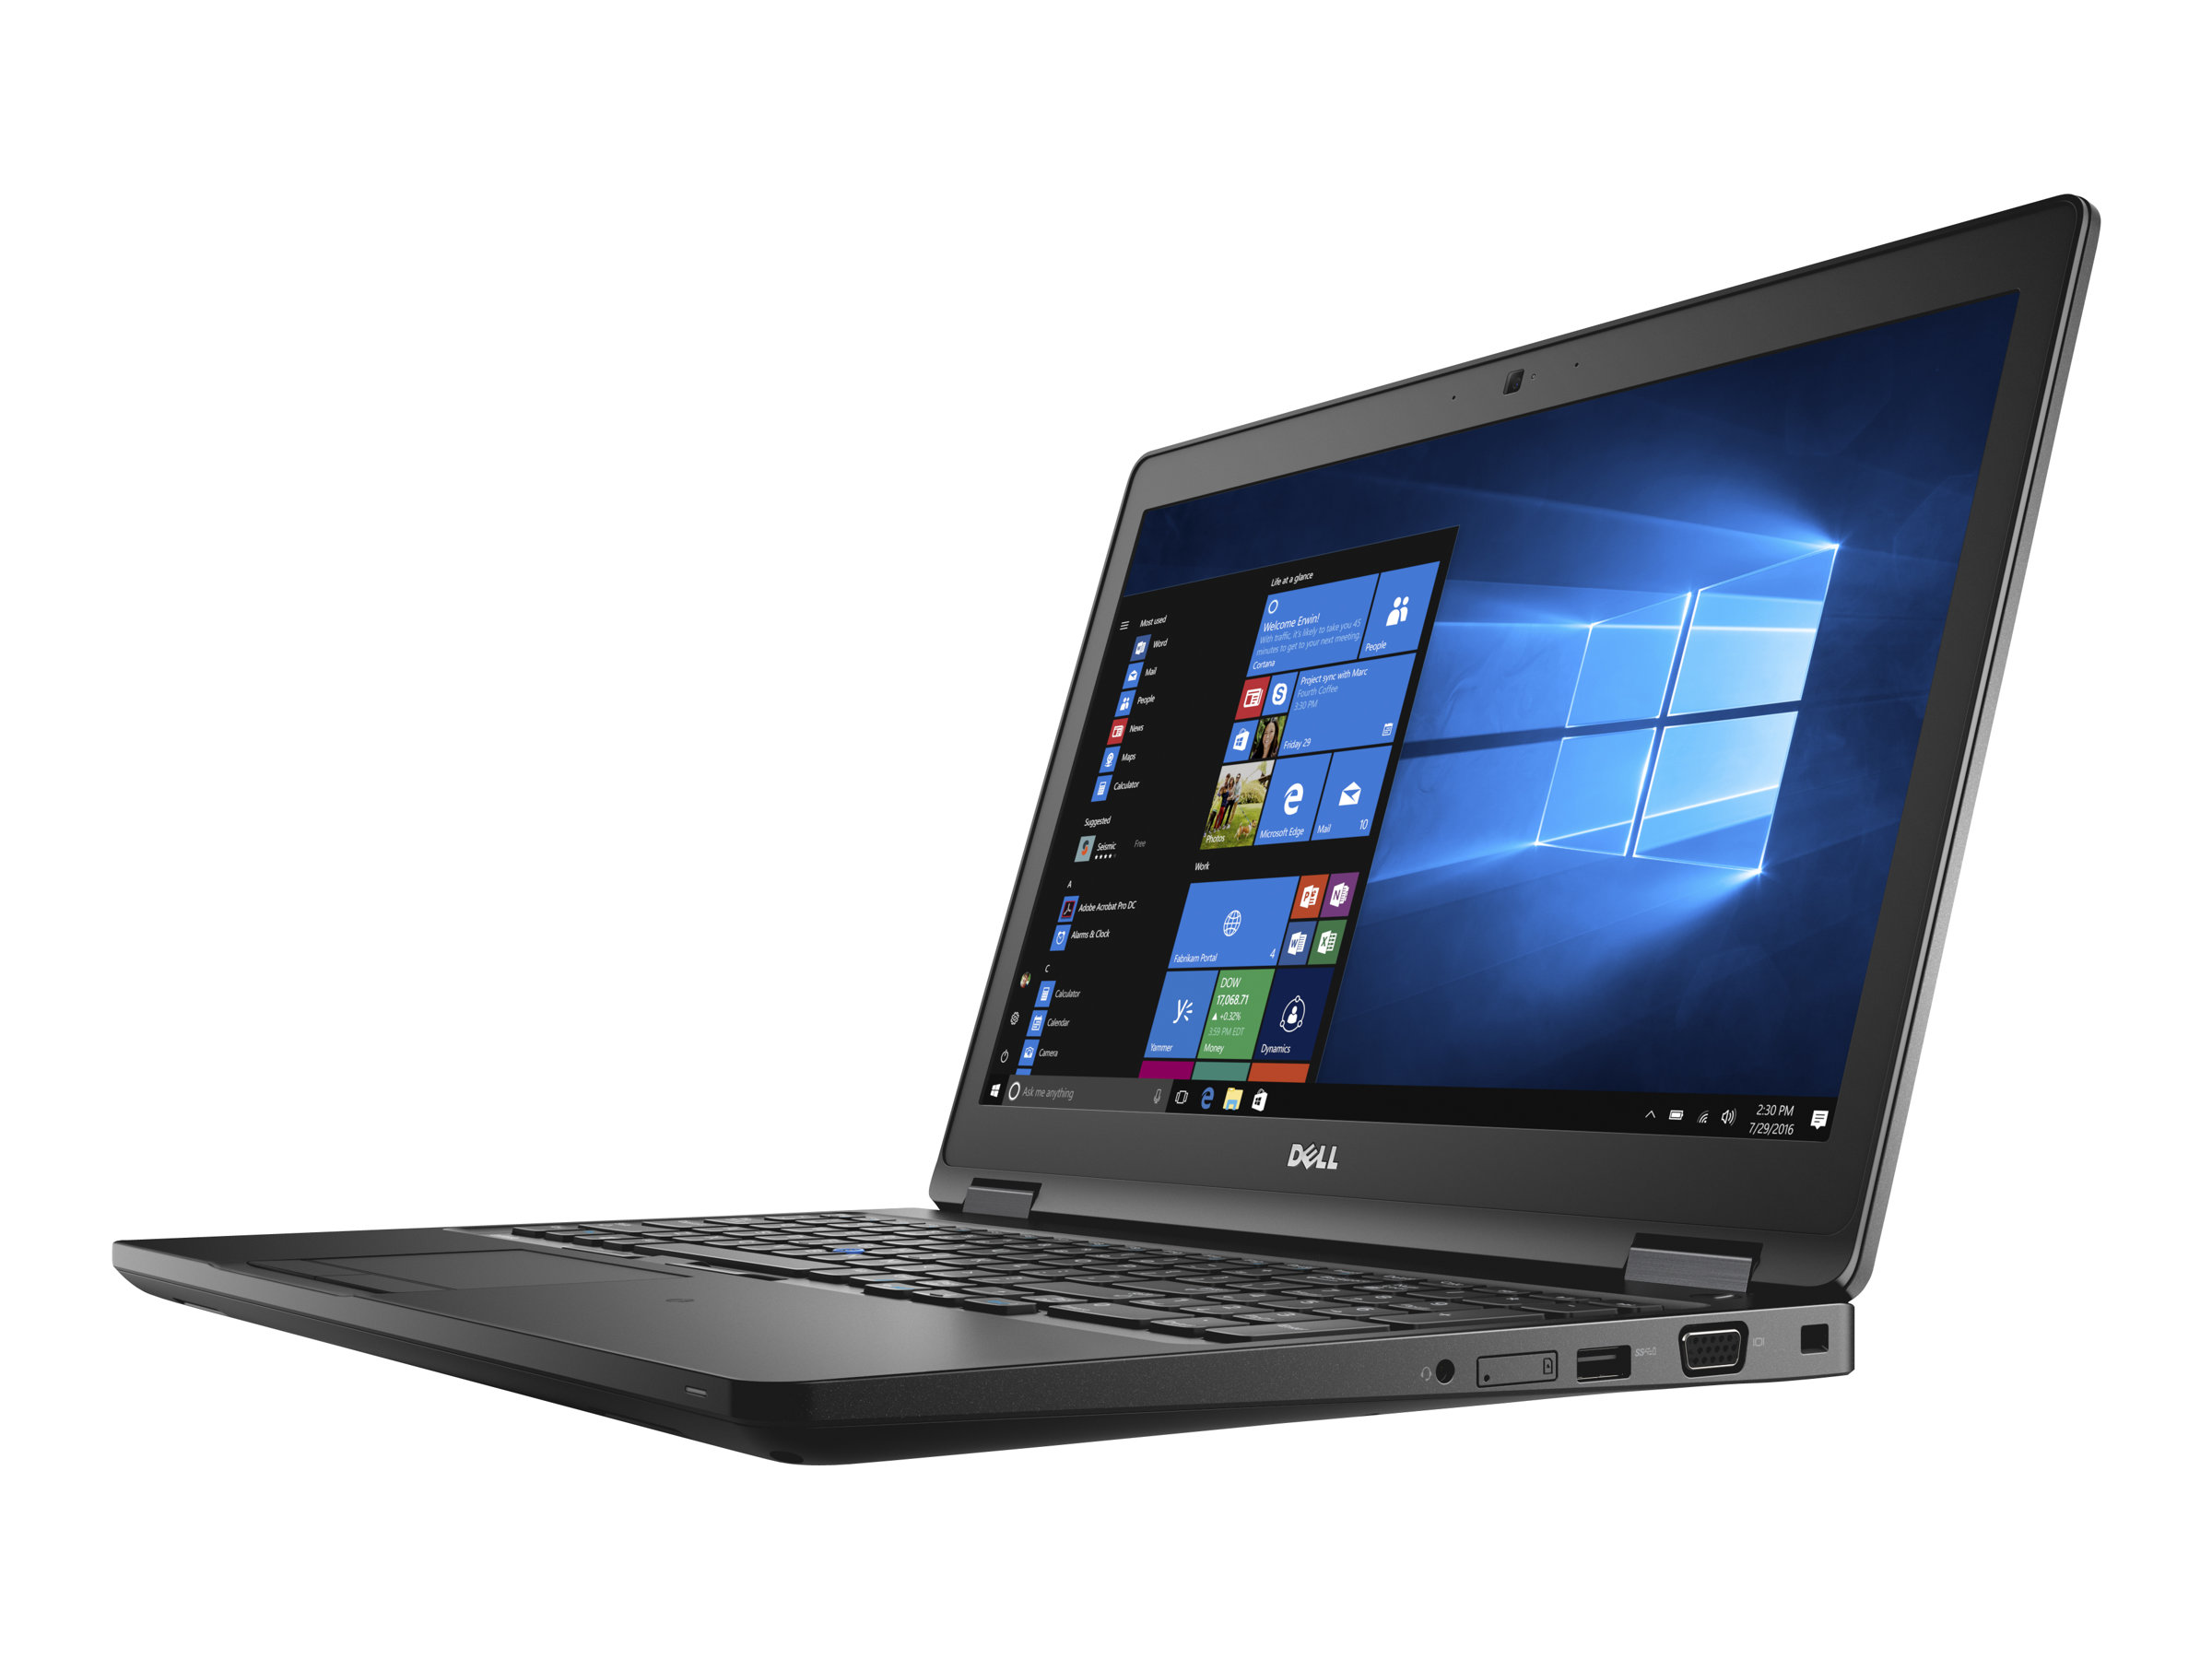 Dell Latitude 5580 - Core i5 7200U / 2.5 GHz - Win 10 Pro 64-Bit - 4 GB RAM - 500 GB HDD - 39.624 cm (15.6